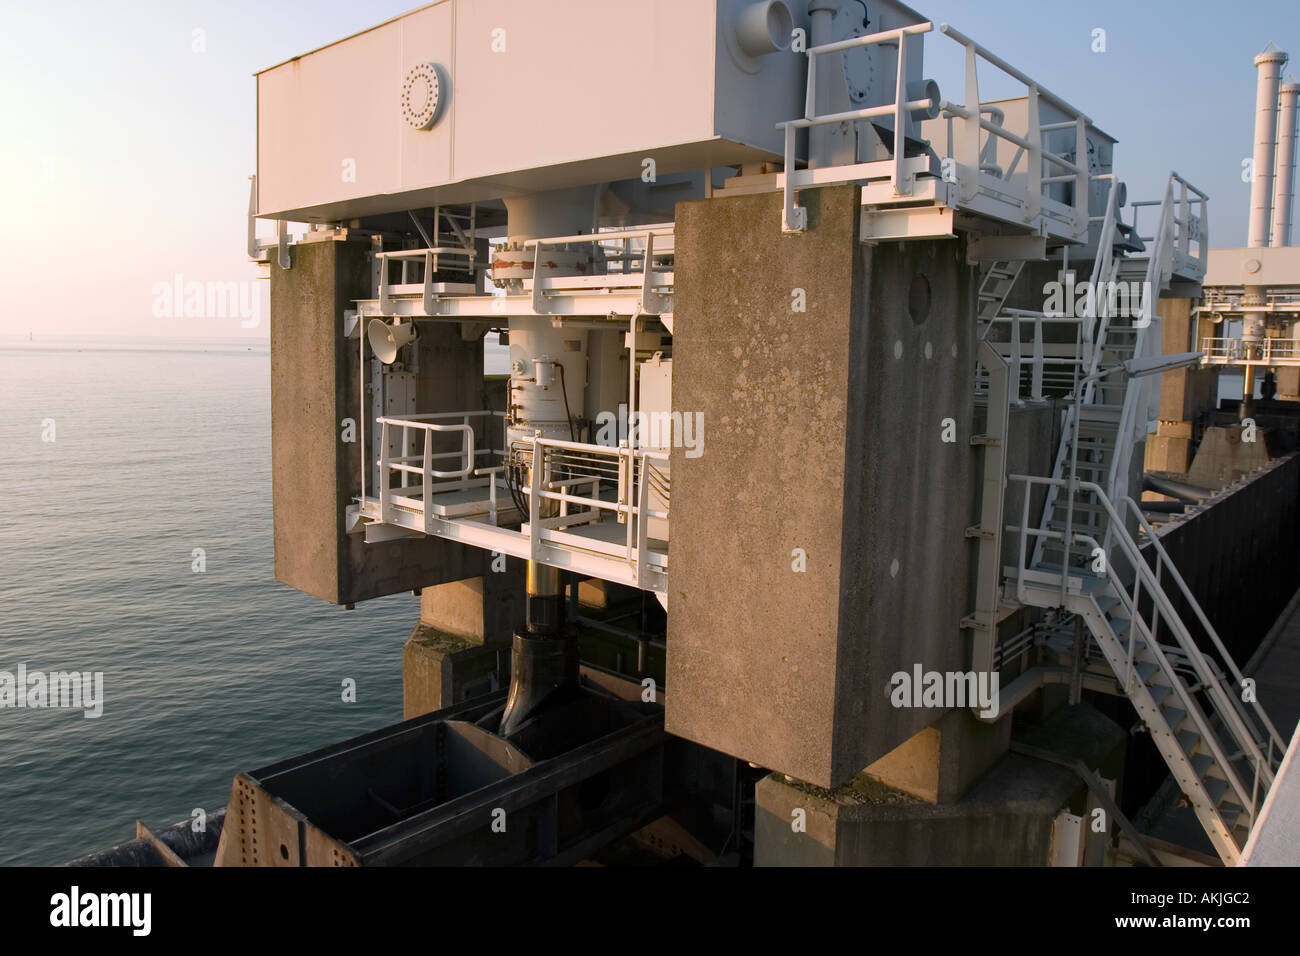 Big hydraulics valves on top of the Storm Barrier to open/close the huge doors in the barrier Stock Photo